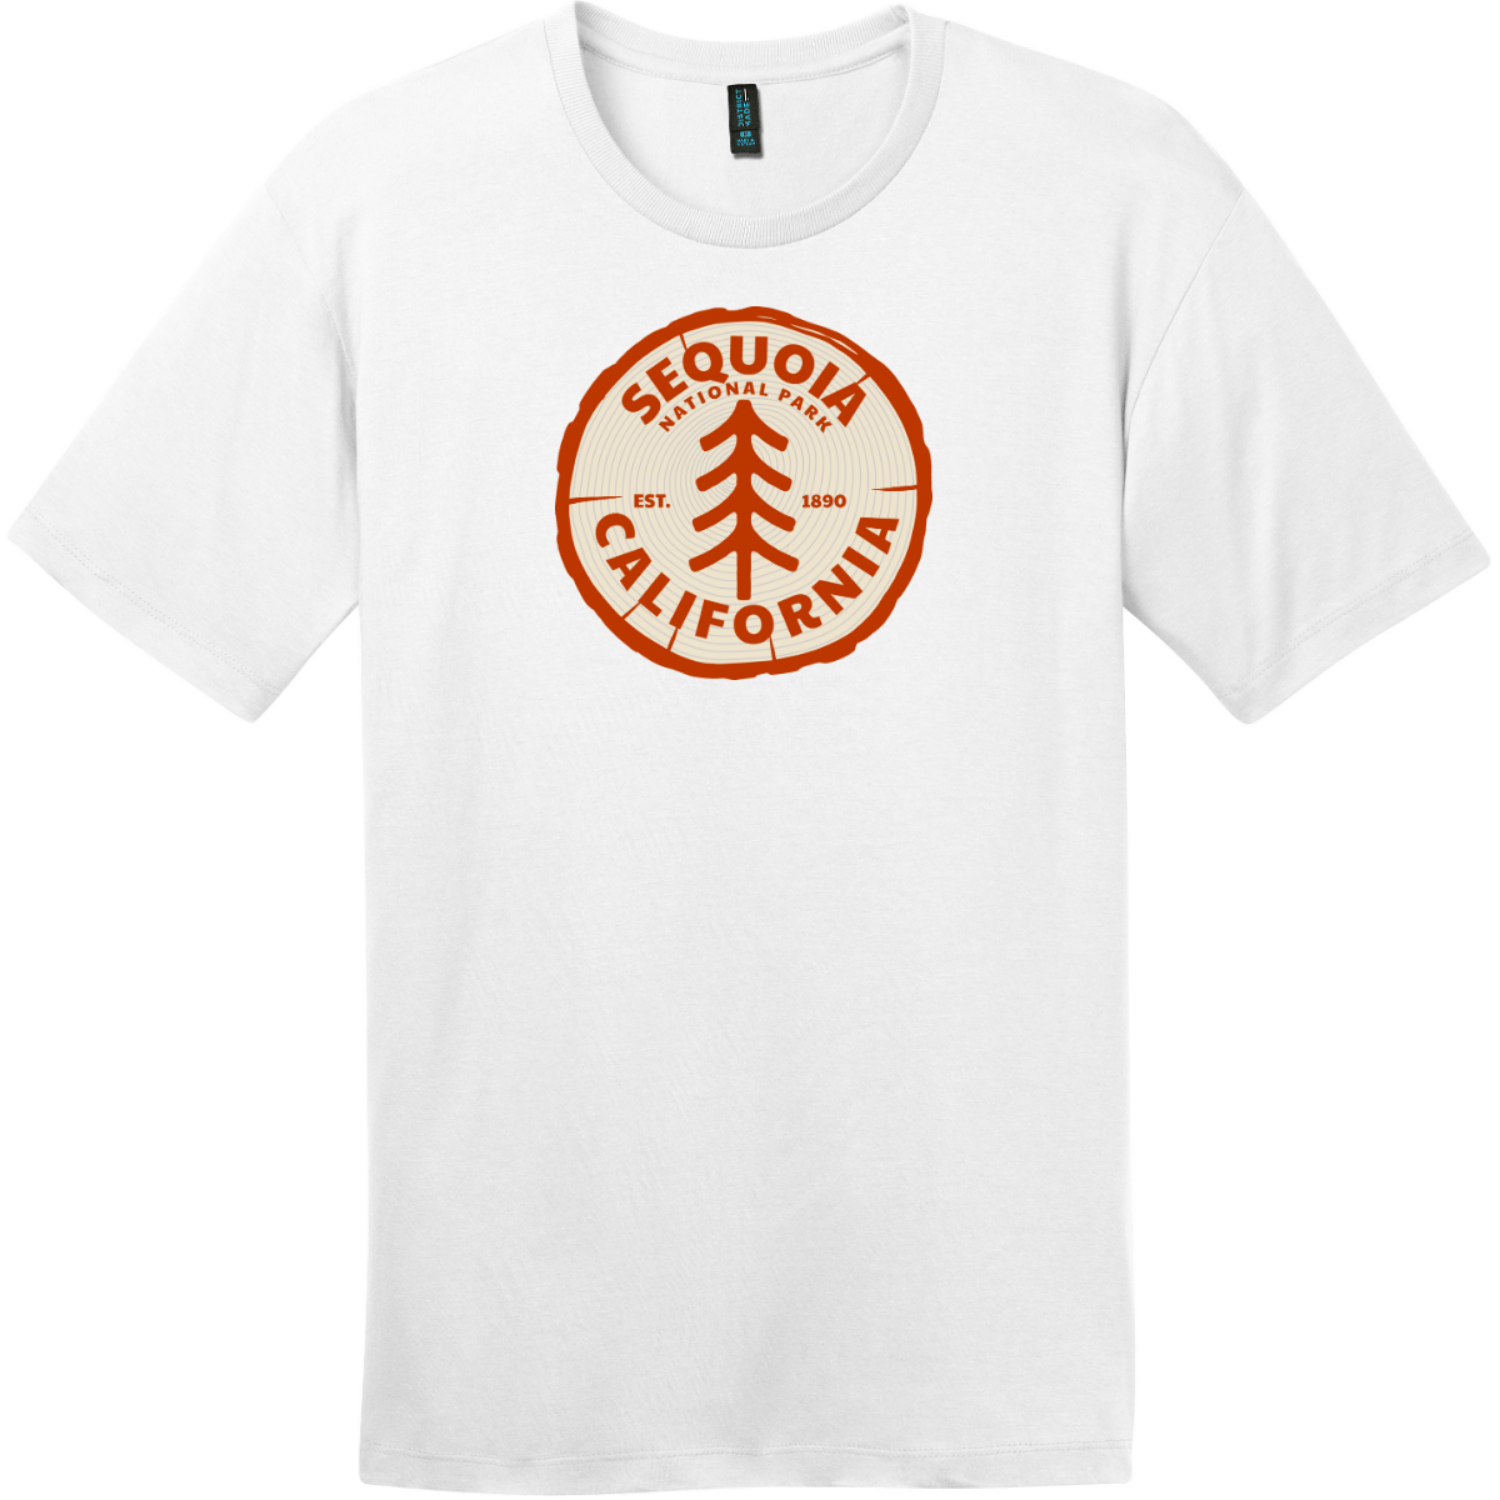 Sequoia National Park California Tree T-Shirt Bright White District Perfect Weight Tee DT104